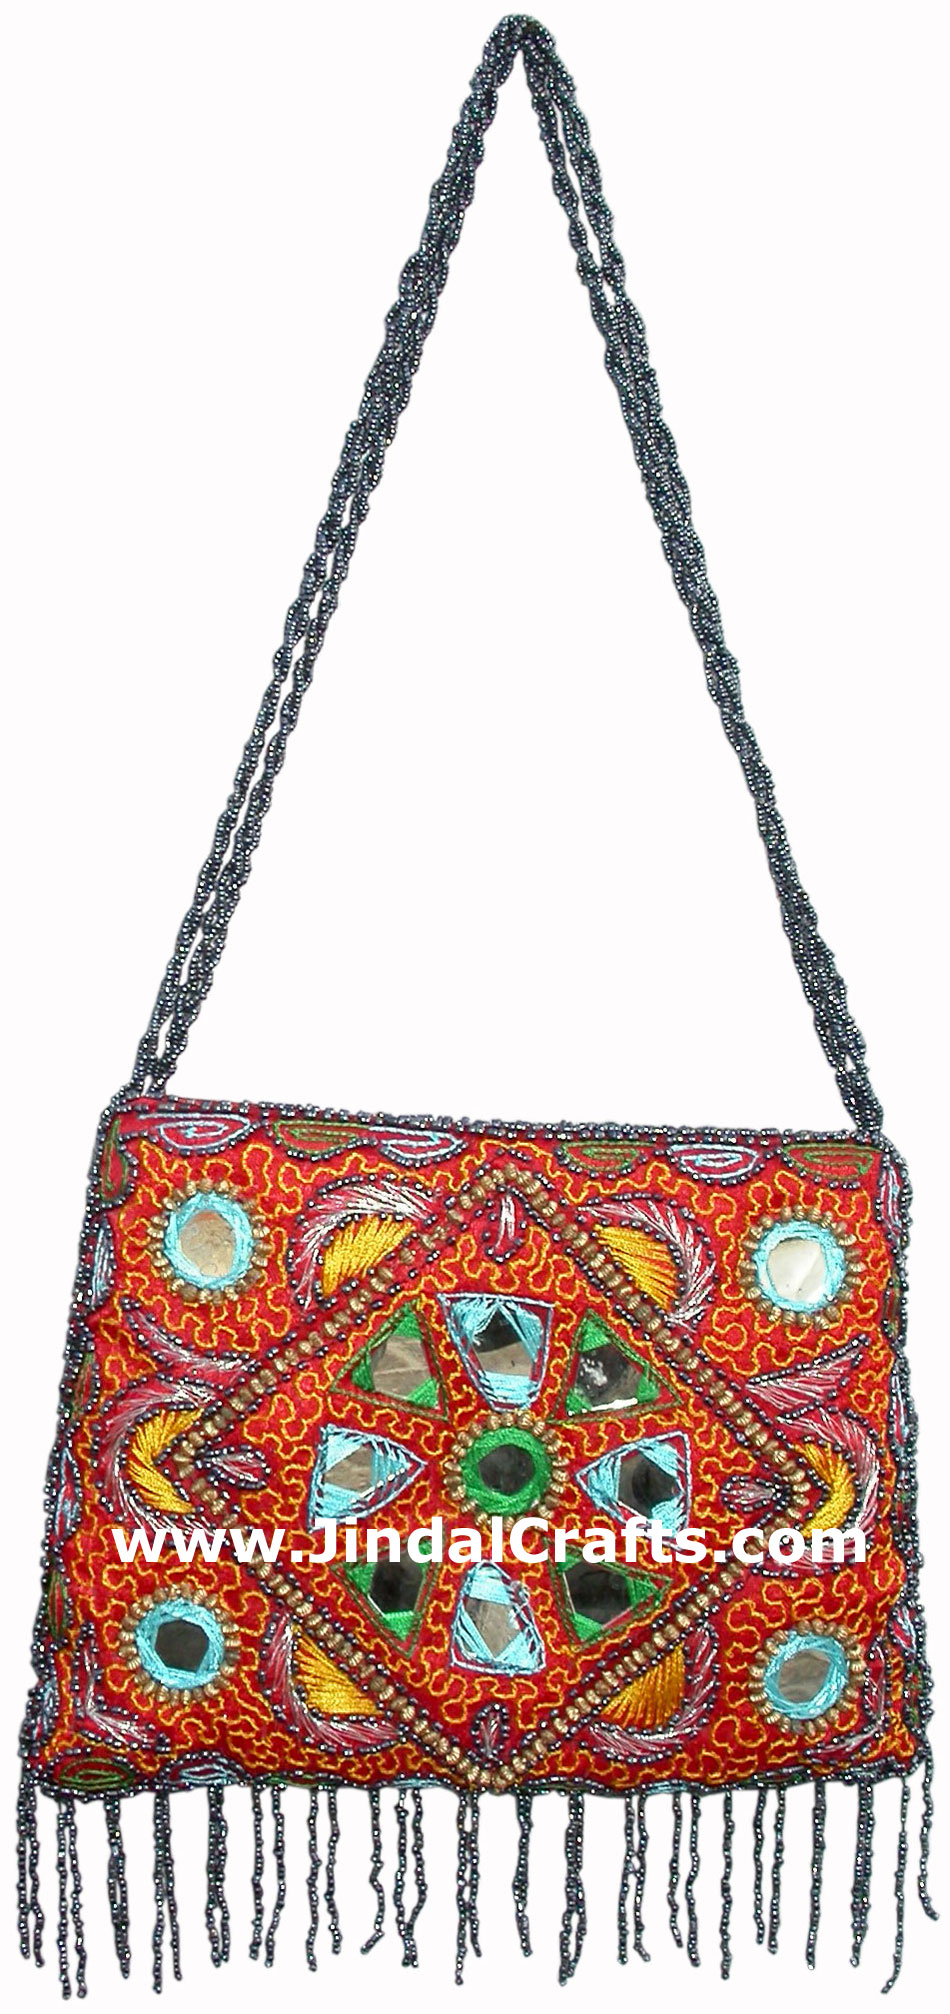 02 >> Hand Embroidered Beaded Traditional Shoulder Purse from India